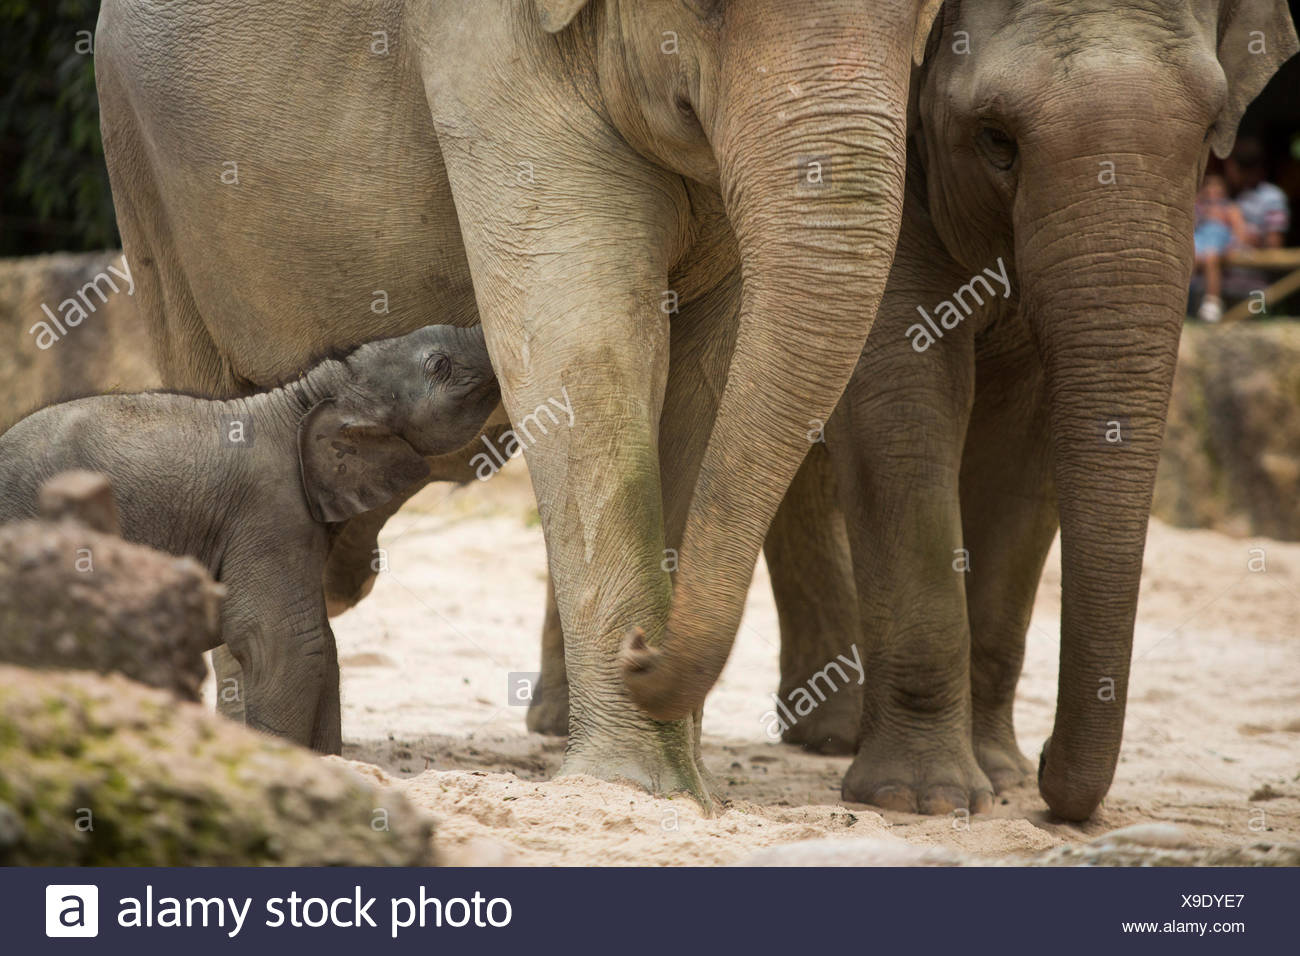 Animals, elephants, young, elephant, zoo Zurich, animals, animal, canton Zurich, zoo, Switzerland, Europe, - Stock Image